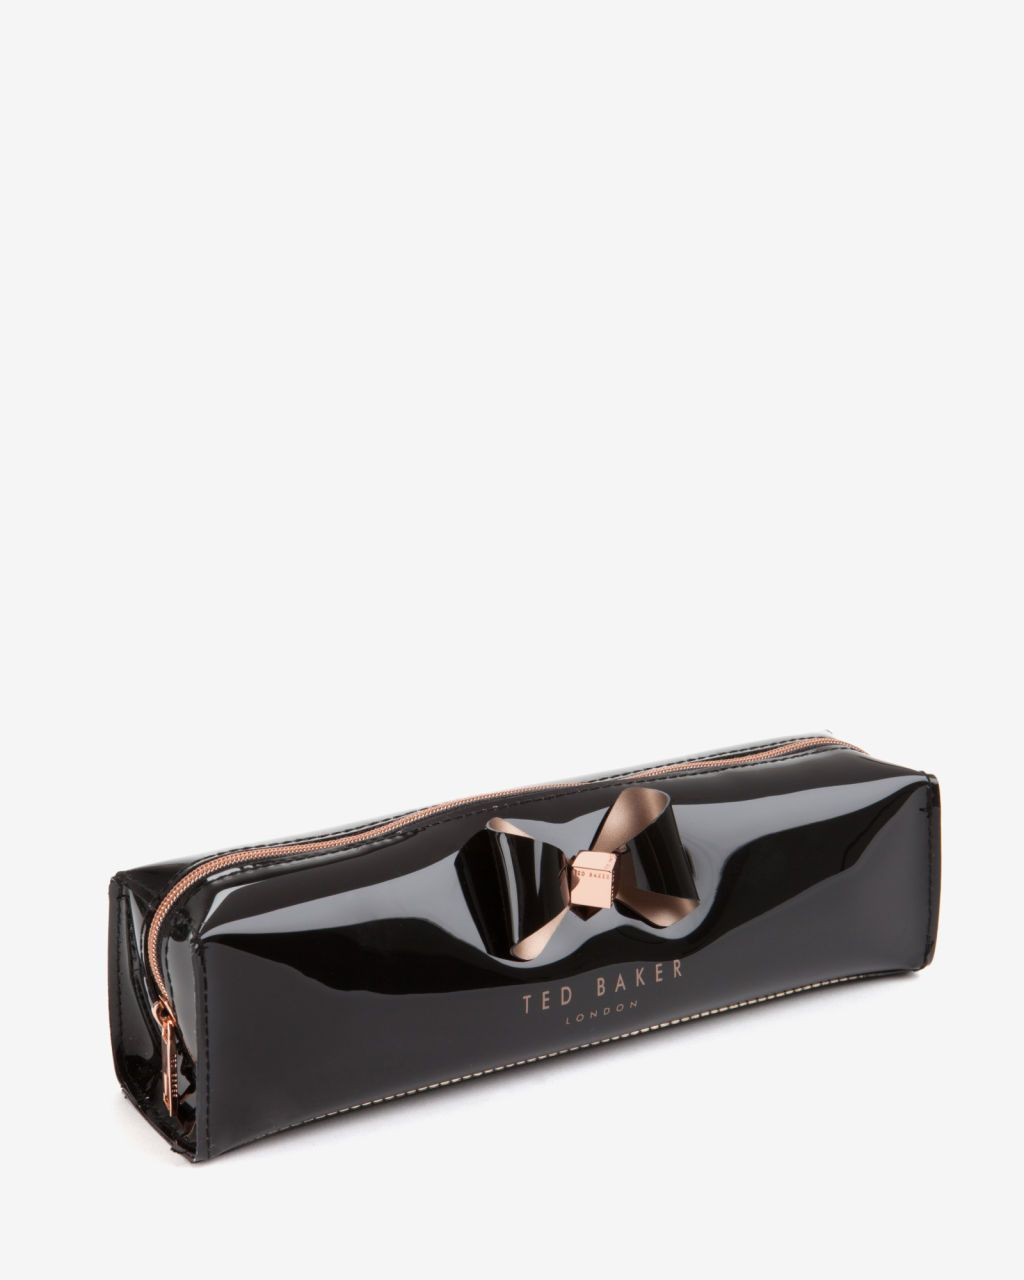 finest selection 7d038 b3779 Bow detail pencil case - Black | Gifts for Her | Ted Baker UK ...